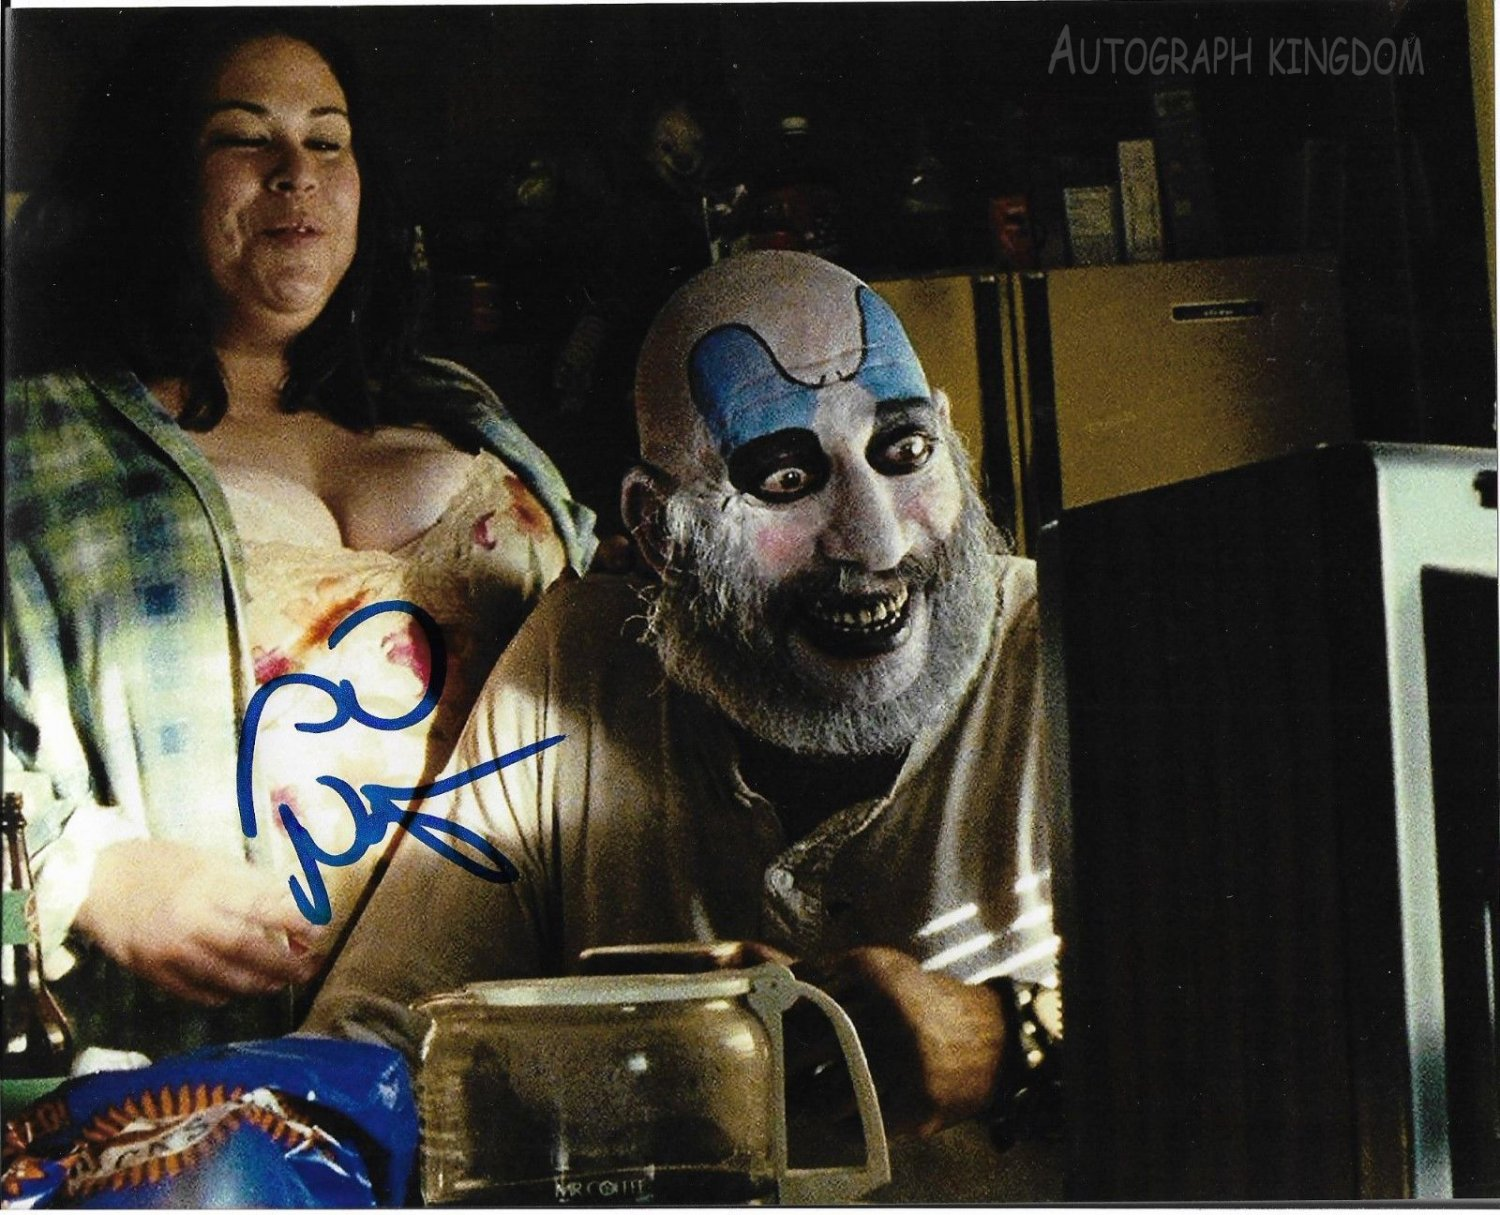 "Sid Haig Captain Spaulding 8 x 10"" Autographed Photo (Reprint:1495) ideal for Birthdays & X-mas"